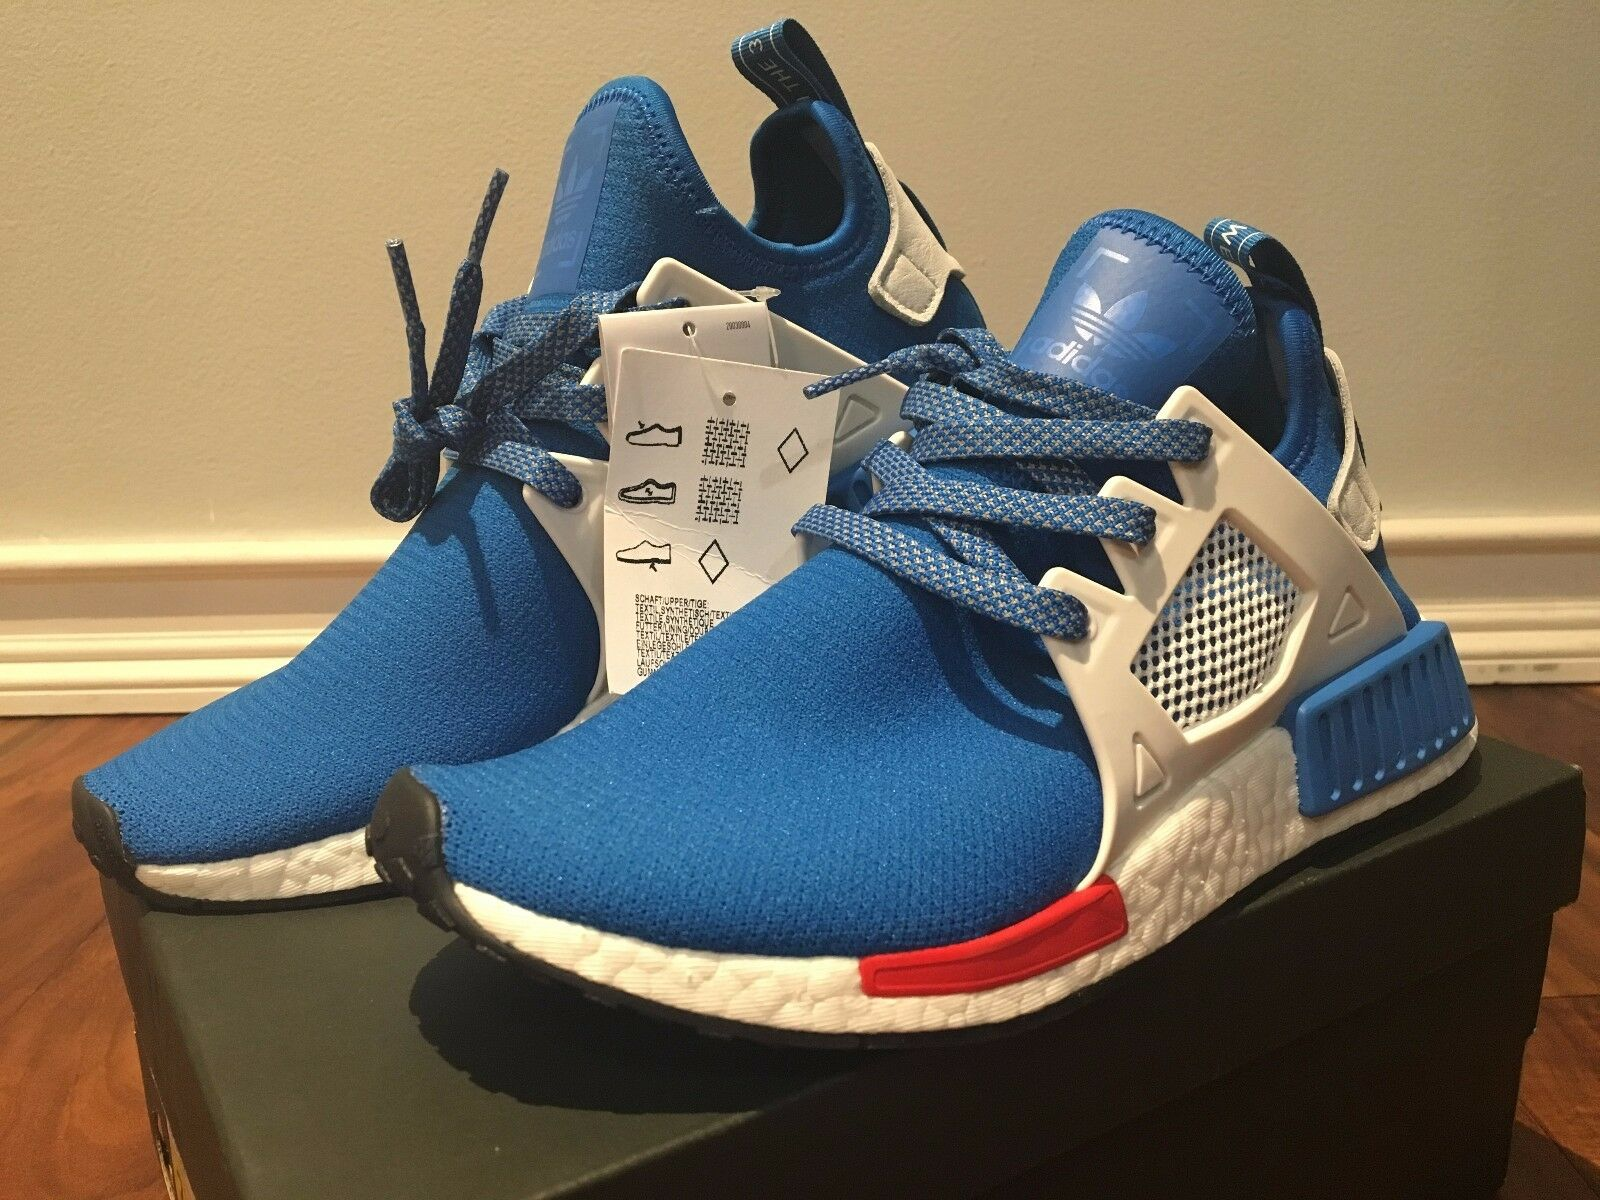 Adidas NMD_XR1 Exclusive Bluebird Europe release FootLocker Exclusive NMD_XR1 CG3092 SUPER Limited 2ad3ef